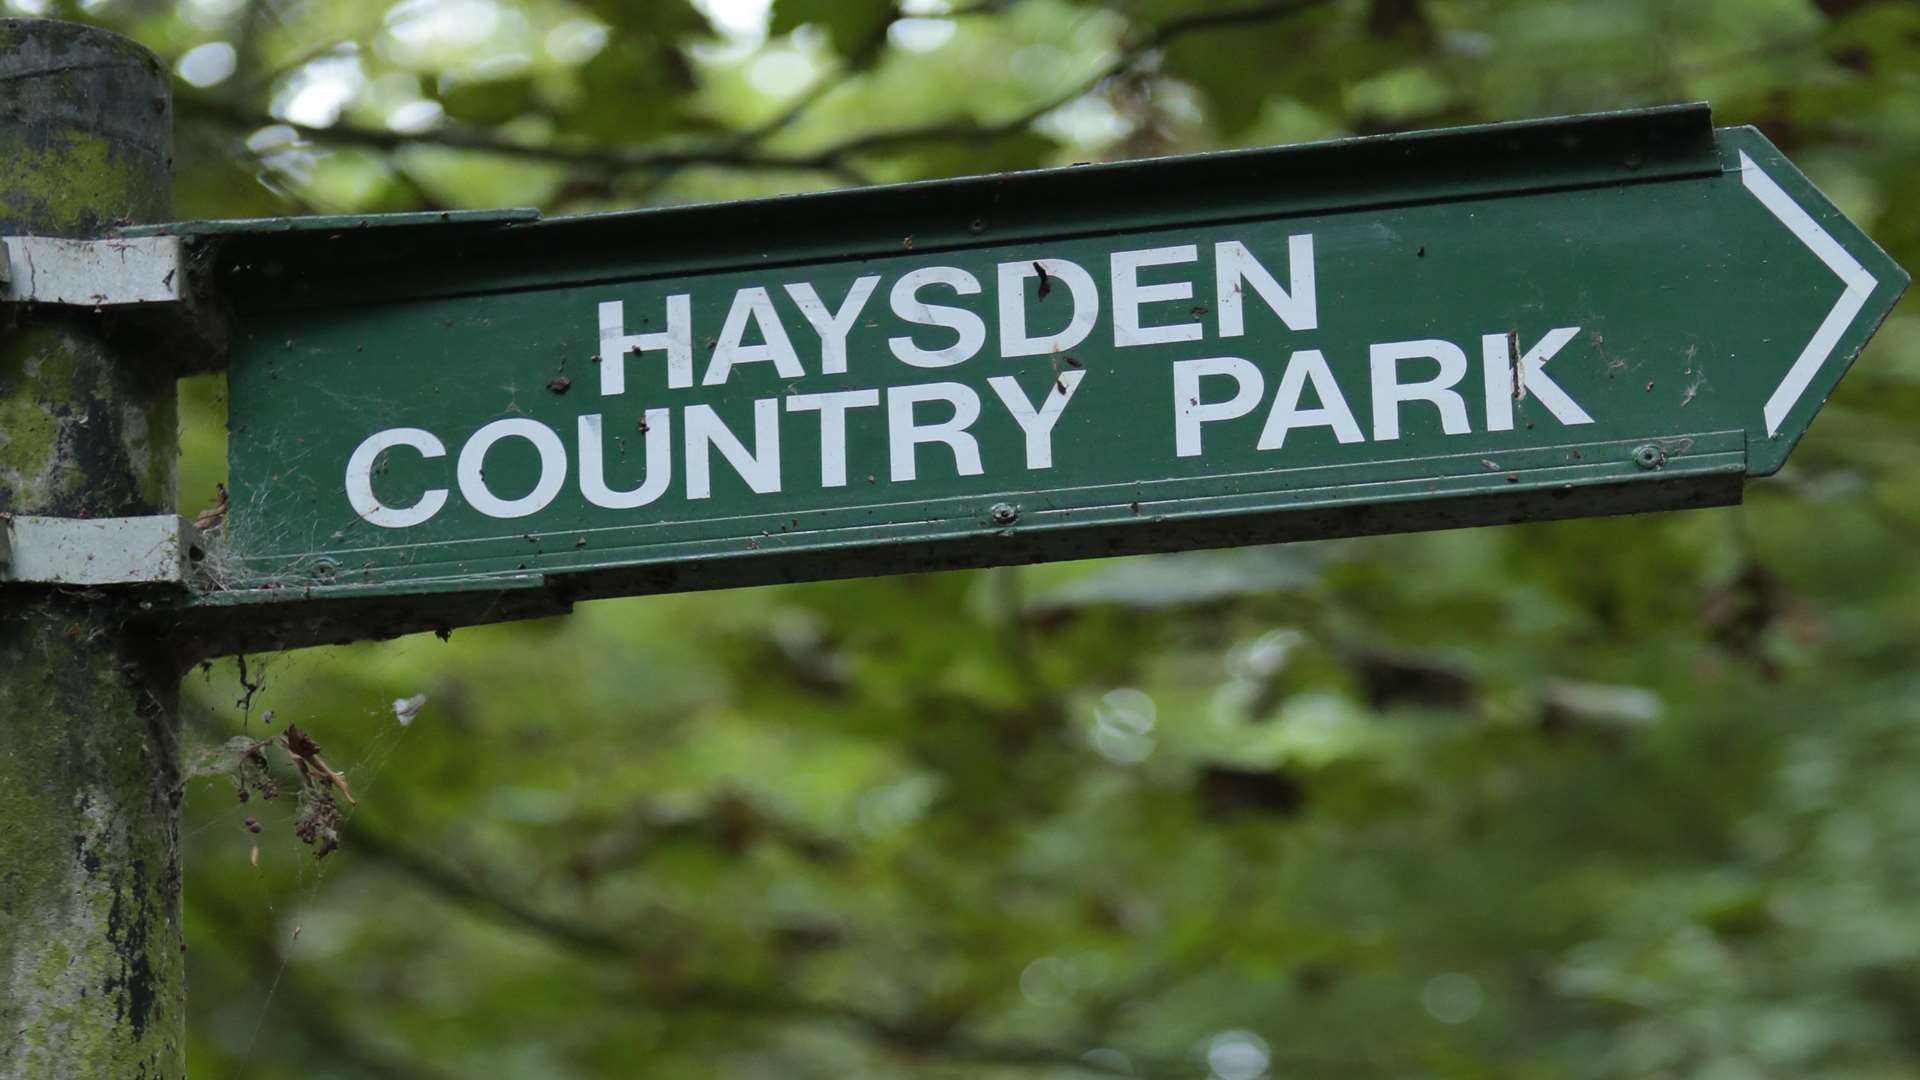 The cats were dumped in Haysden Country Park